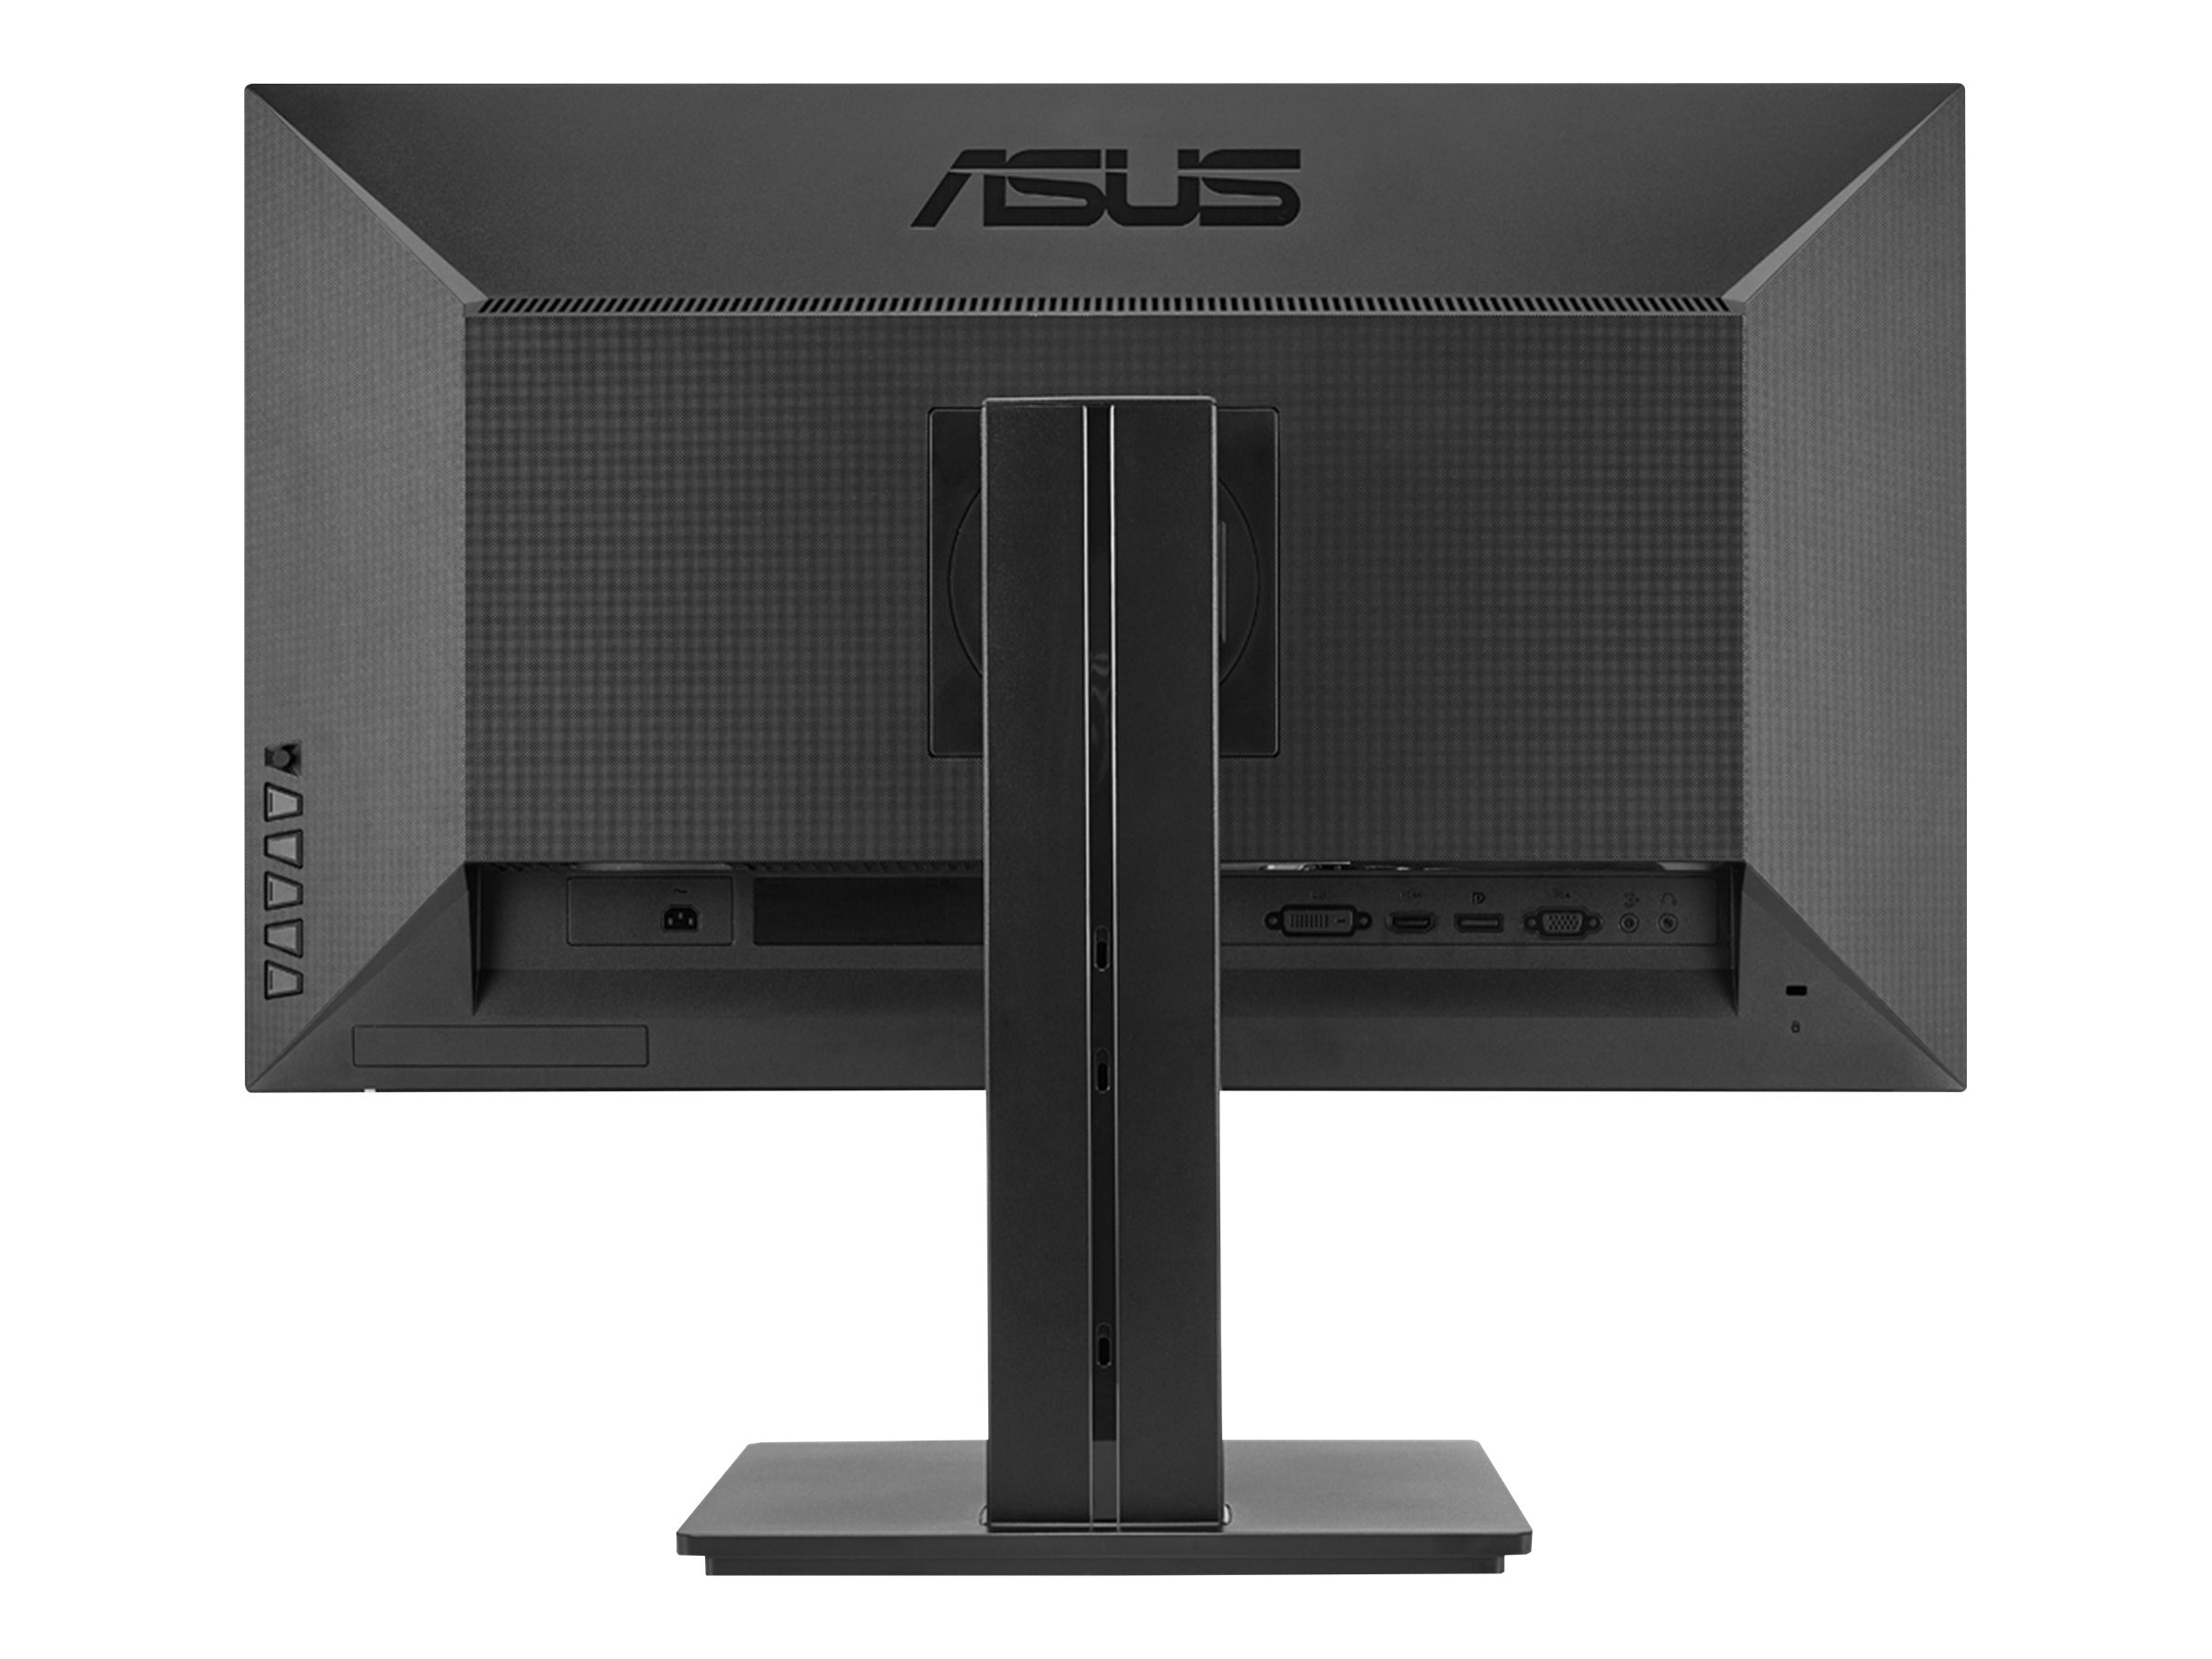 Asus 27 PB277Q QHD LED-LCD Monitor, Black, PB277Q